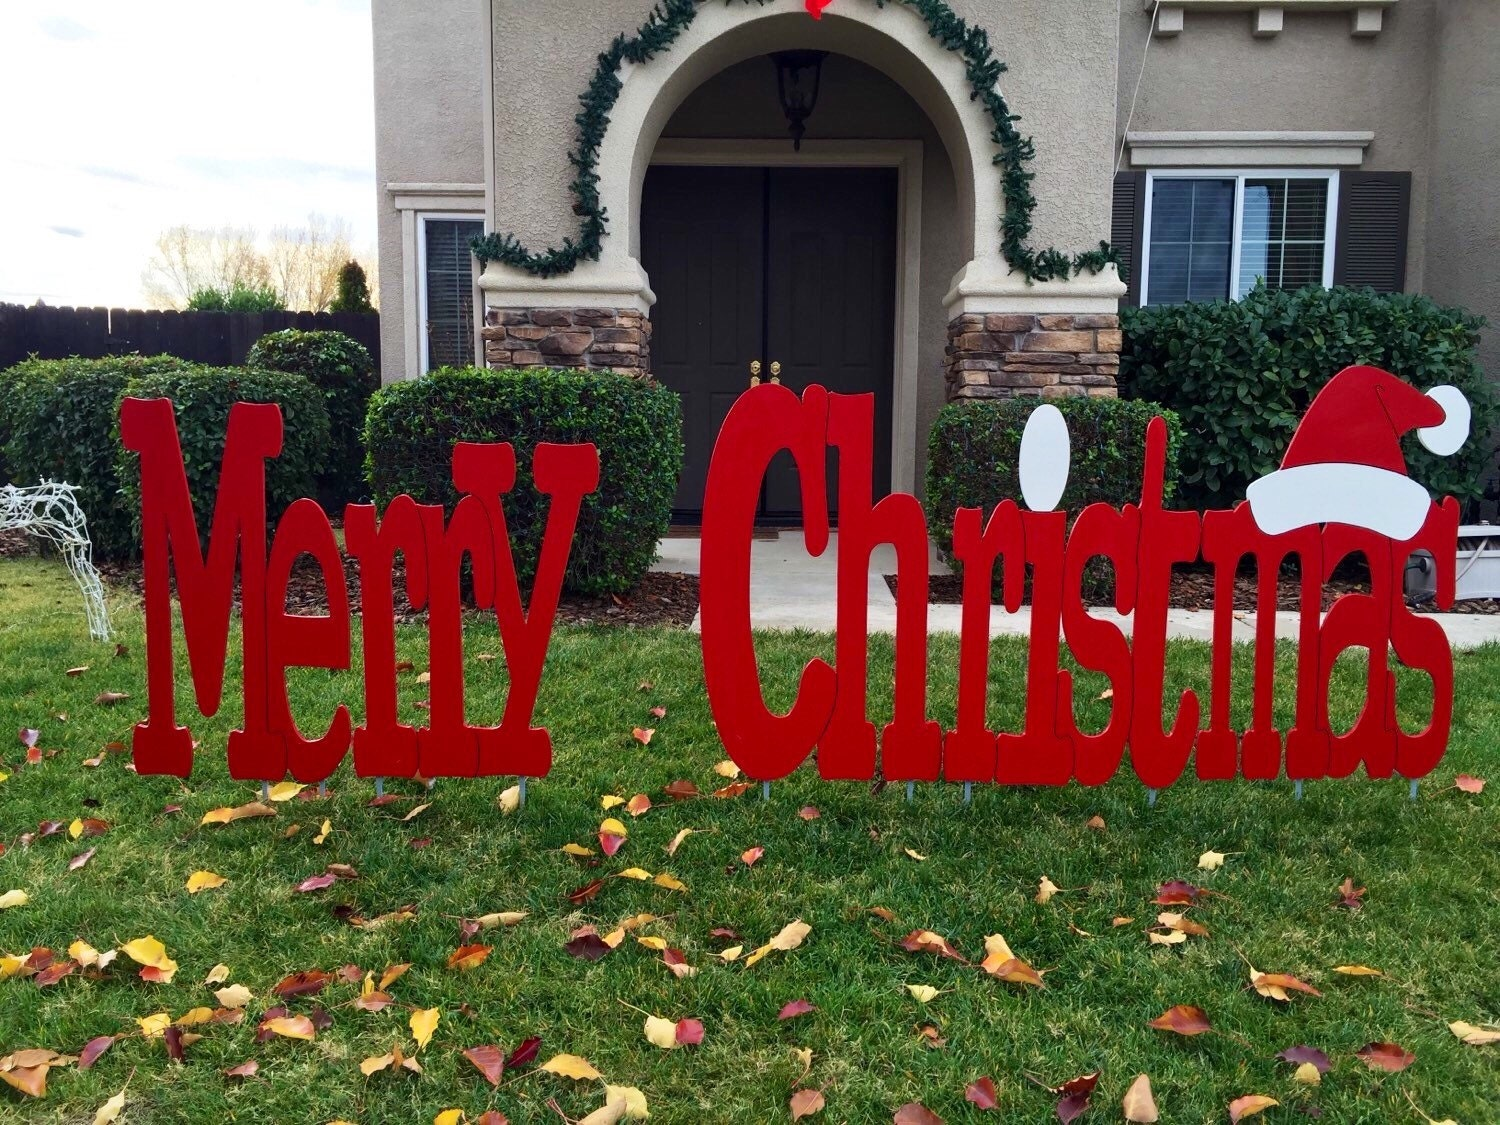 Merry christmas outdoor holiday yard art sign large for Outdoor xmas decorations